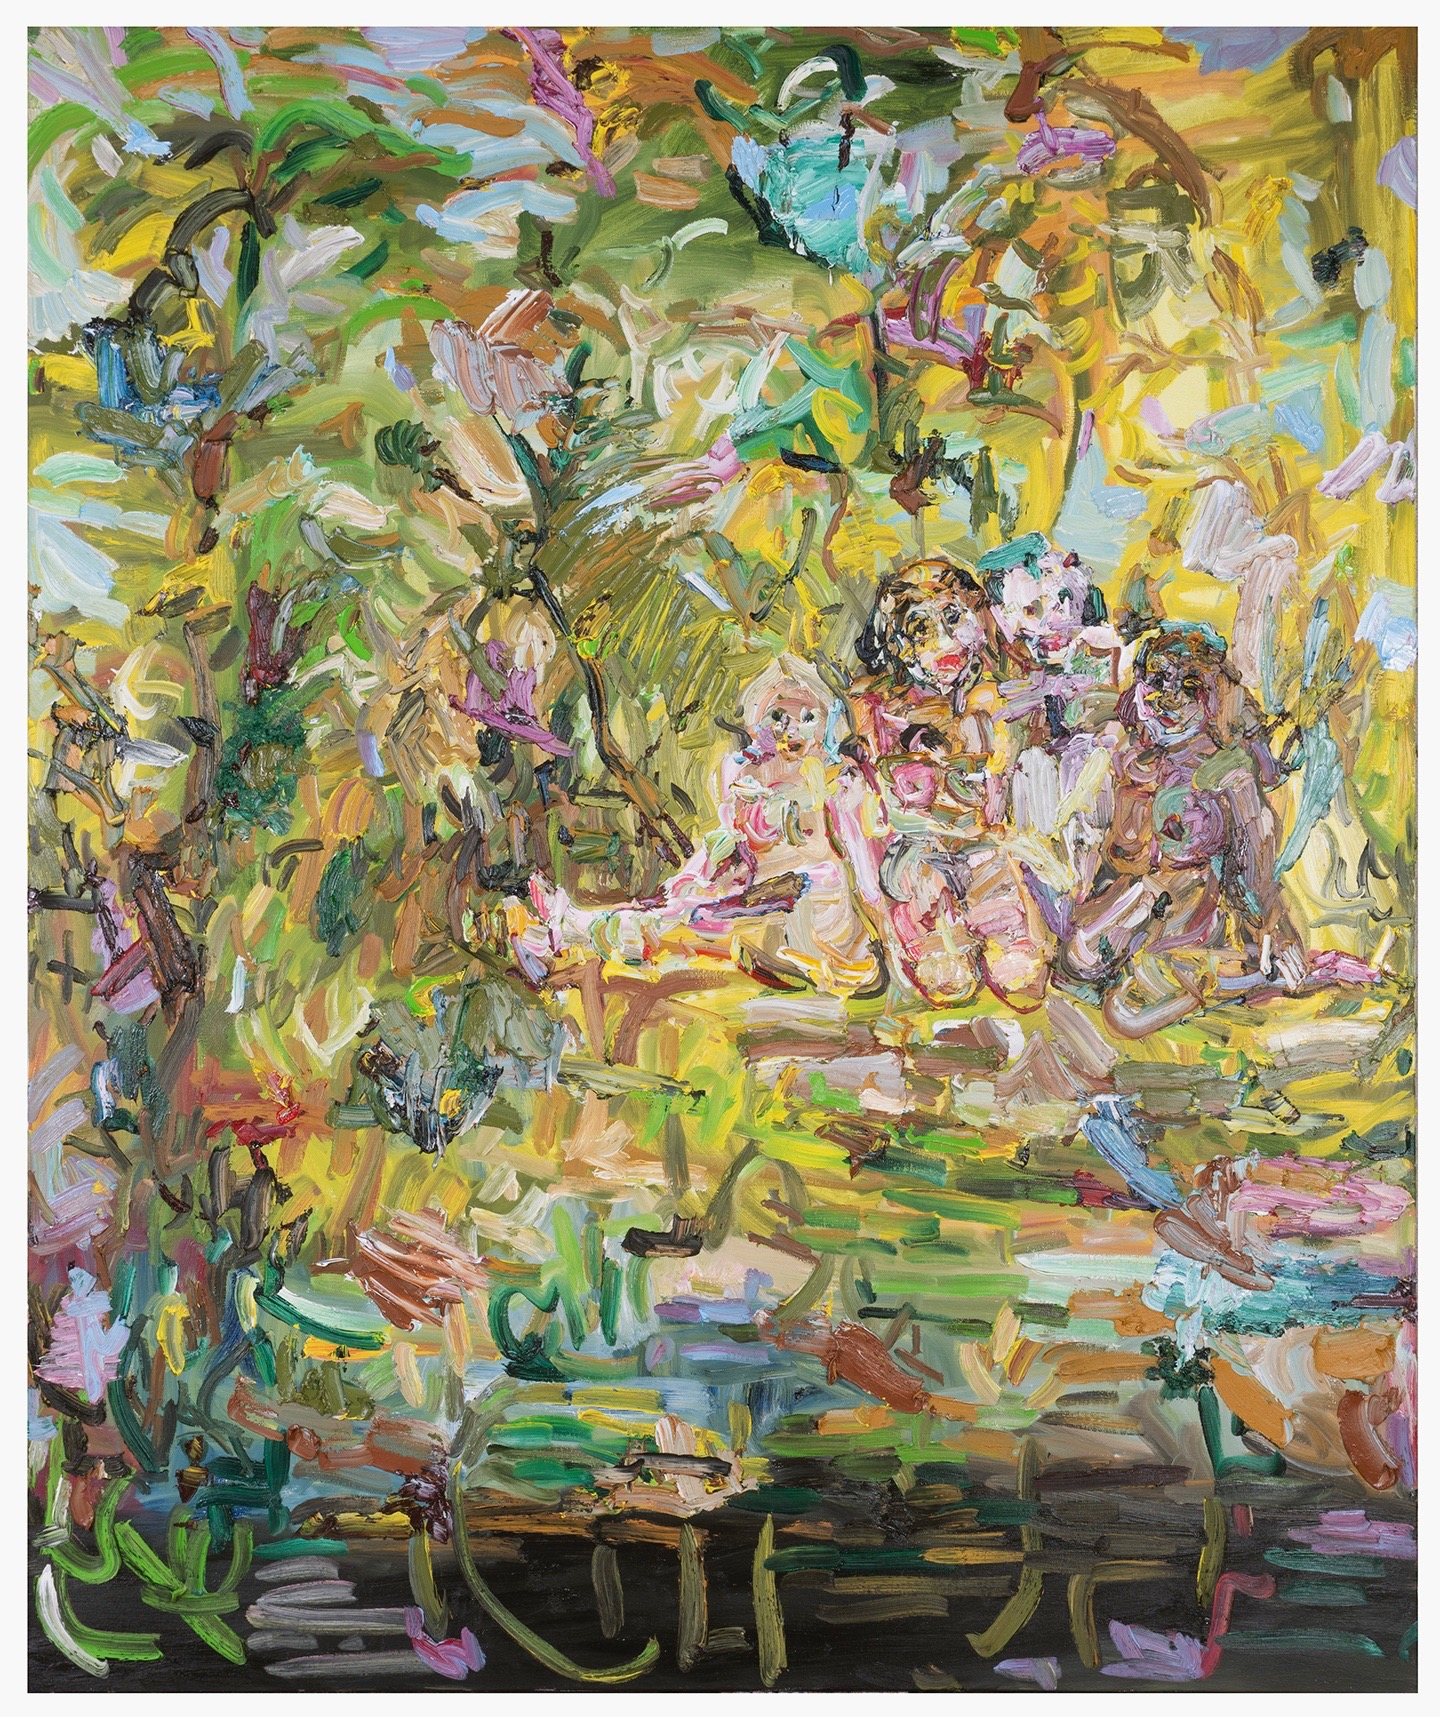 """Vanessa Prager """"End of the Road"""" 2019, oil on canvas 182.9 x 152.4 cm"""